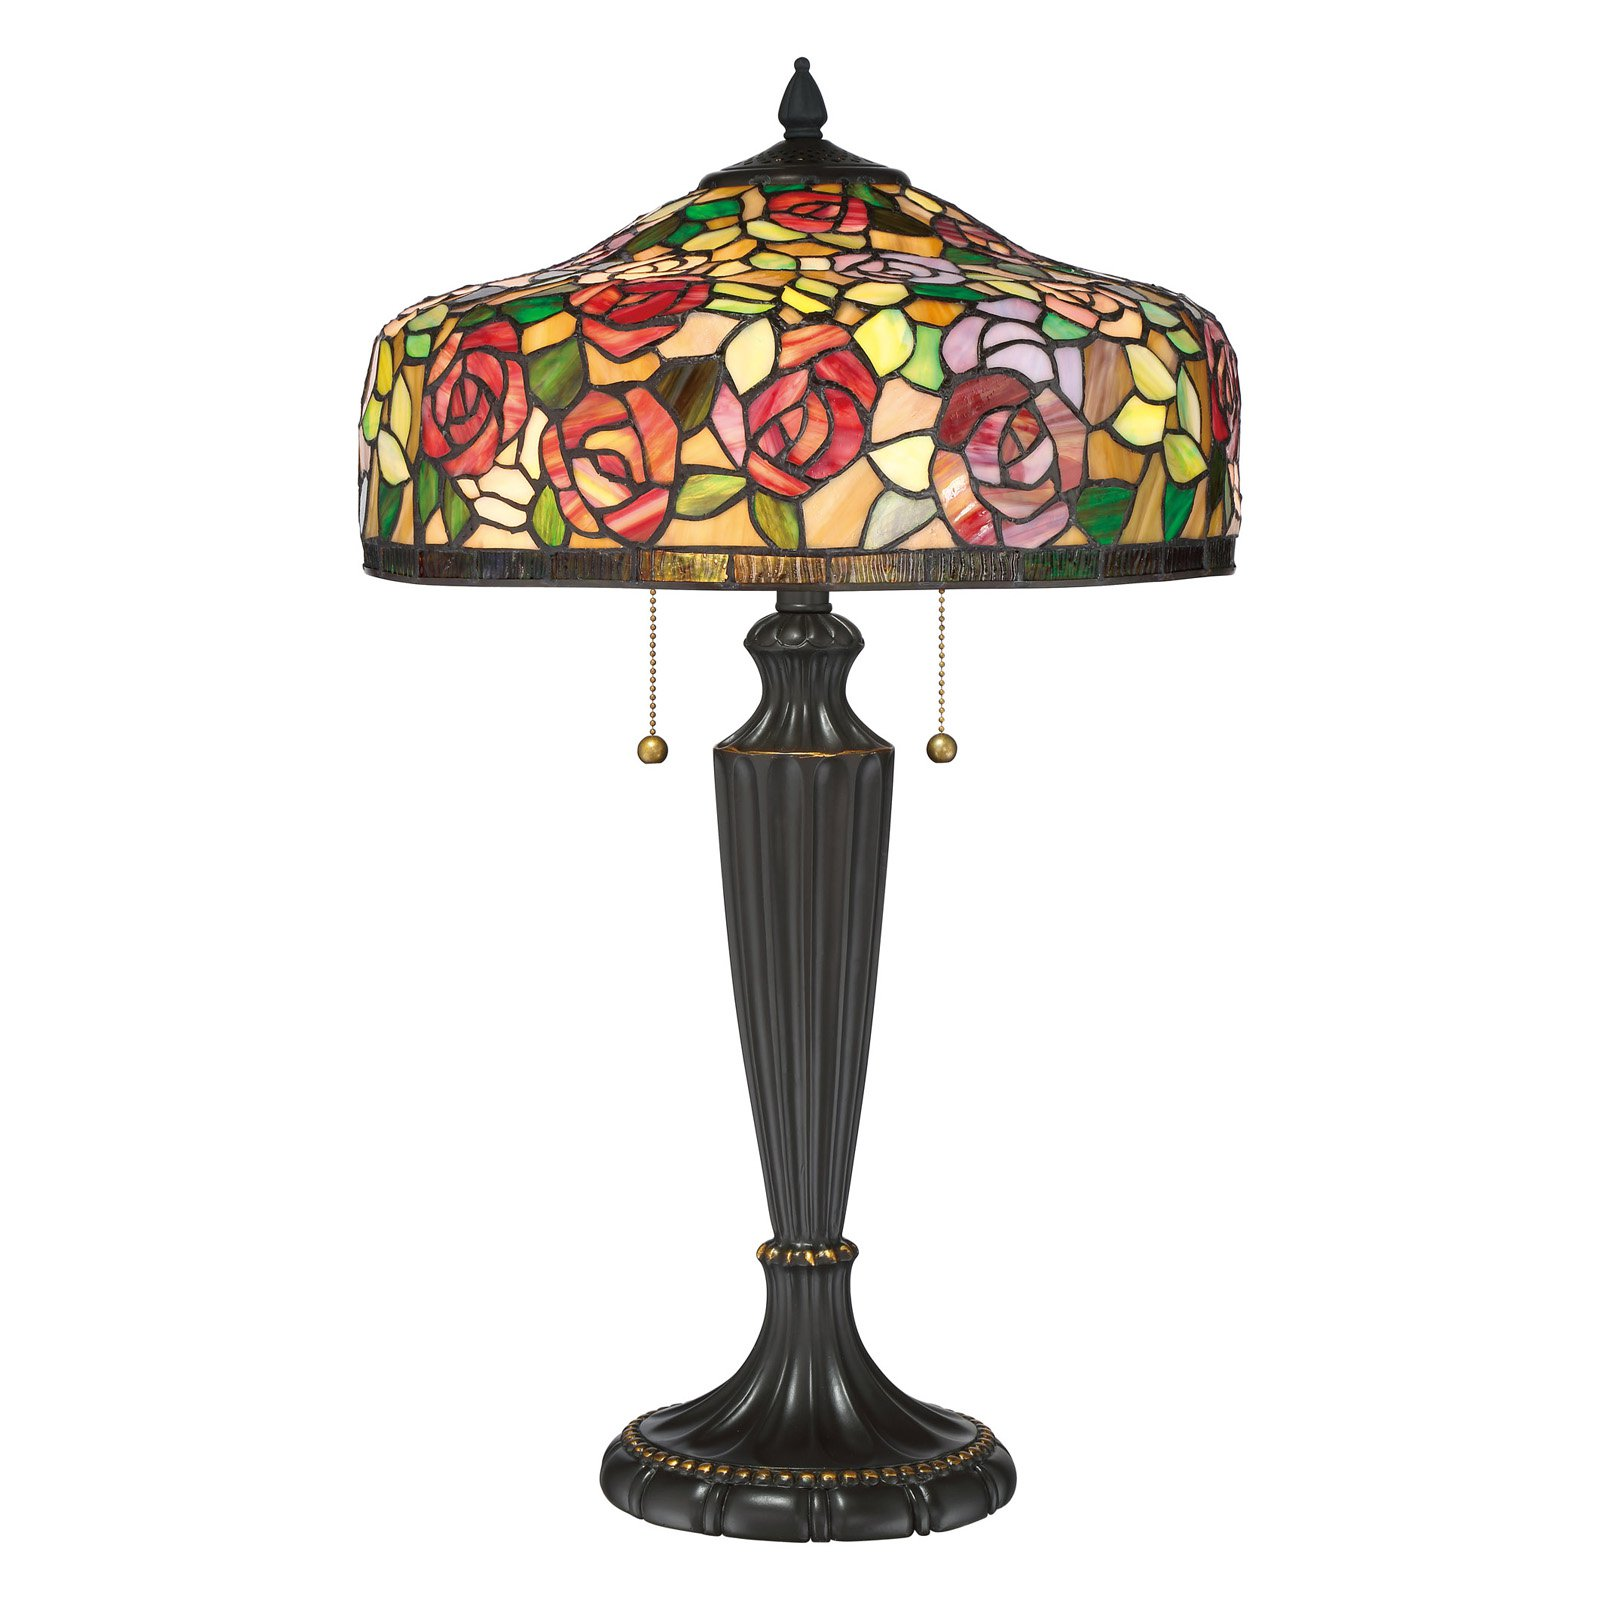 Quoizel 26.75 in. Tiffany Table Lamp by Quoizel